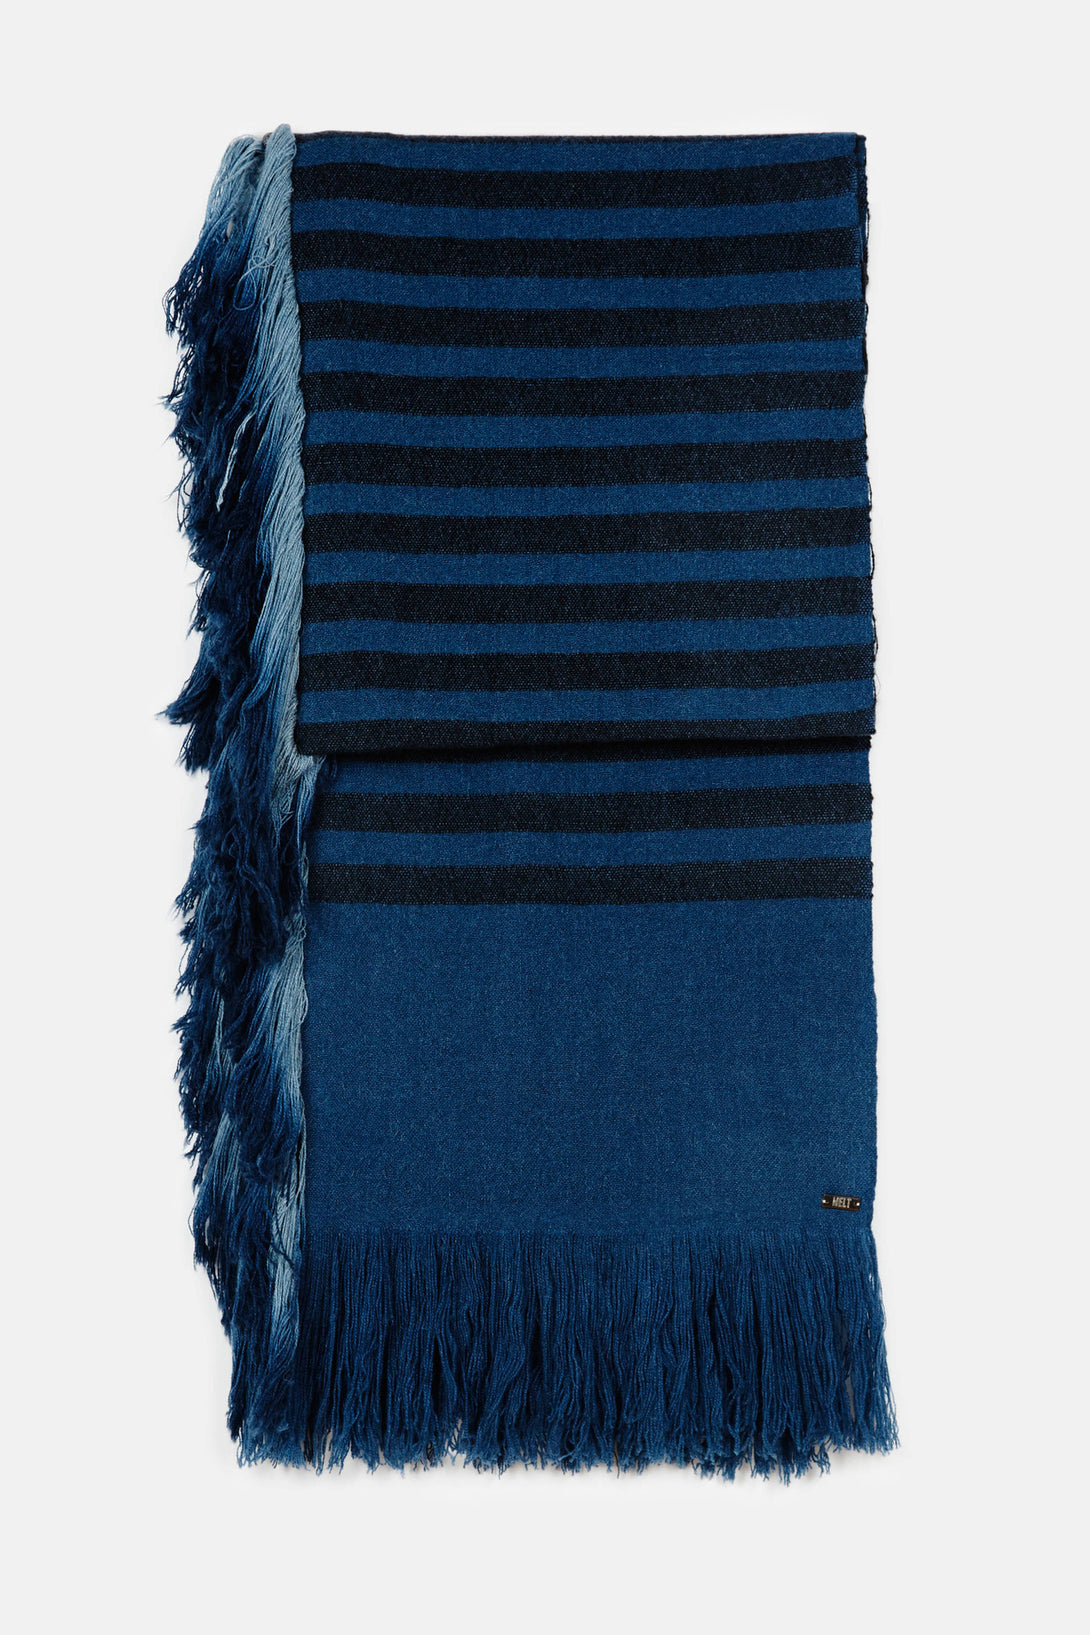 Bhalay Mohawk Scarf - Oily Blue